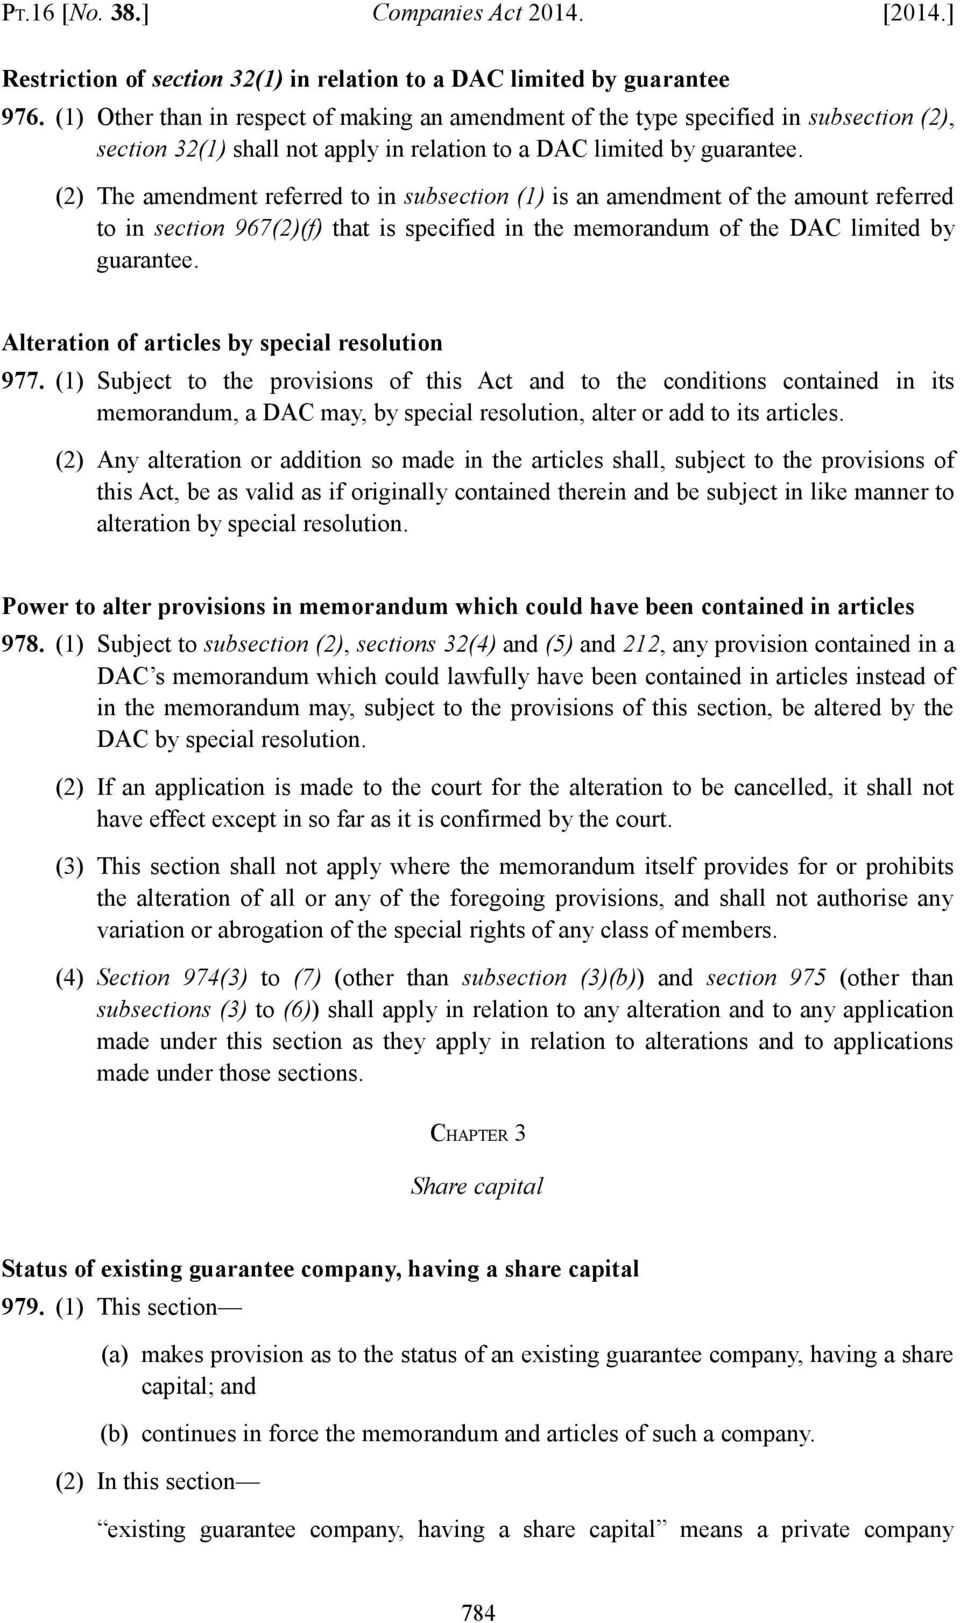 (2) The amendment referred to in subsection (1) is an amendment of the amount referred to in section 967(2)(f) that is specified in the memorandum of the DAC limited by guarantee.